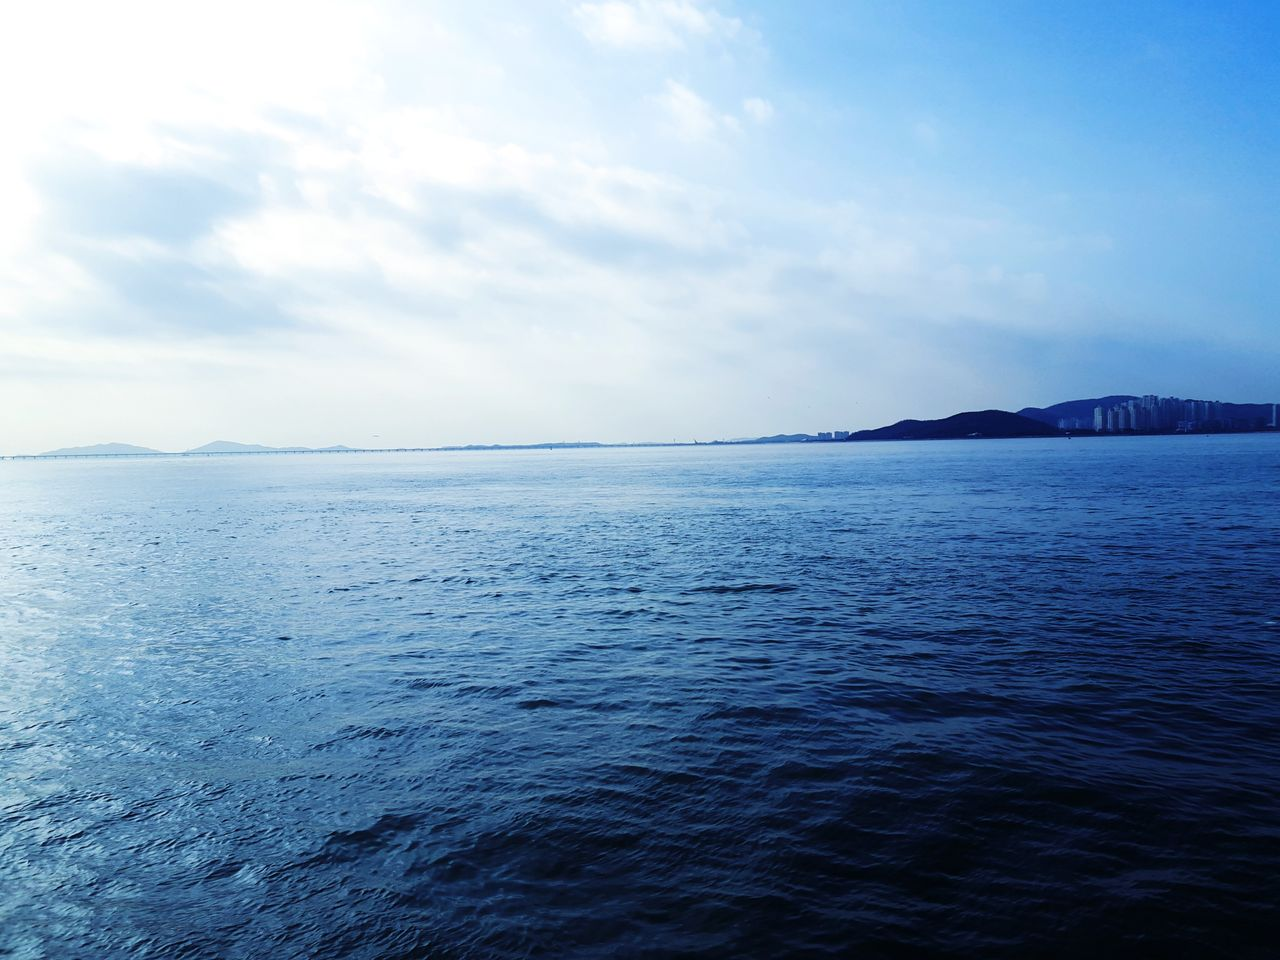 sky, water, sea, scenics - nature, beauty in nature, tranquil scene, waterfront, tranquility, cloud - sky, no people, idyllic, nature, blue, horizon, mountain, horizon over water, remote, day, outdoors